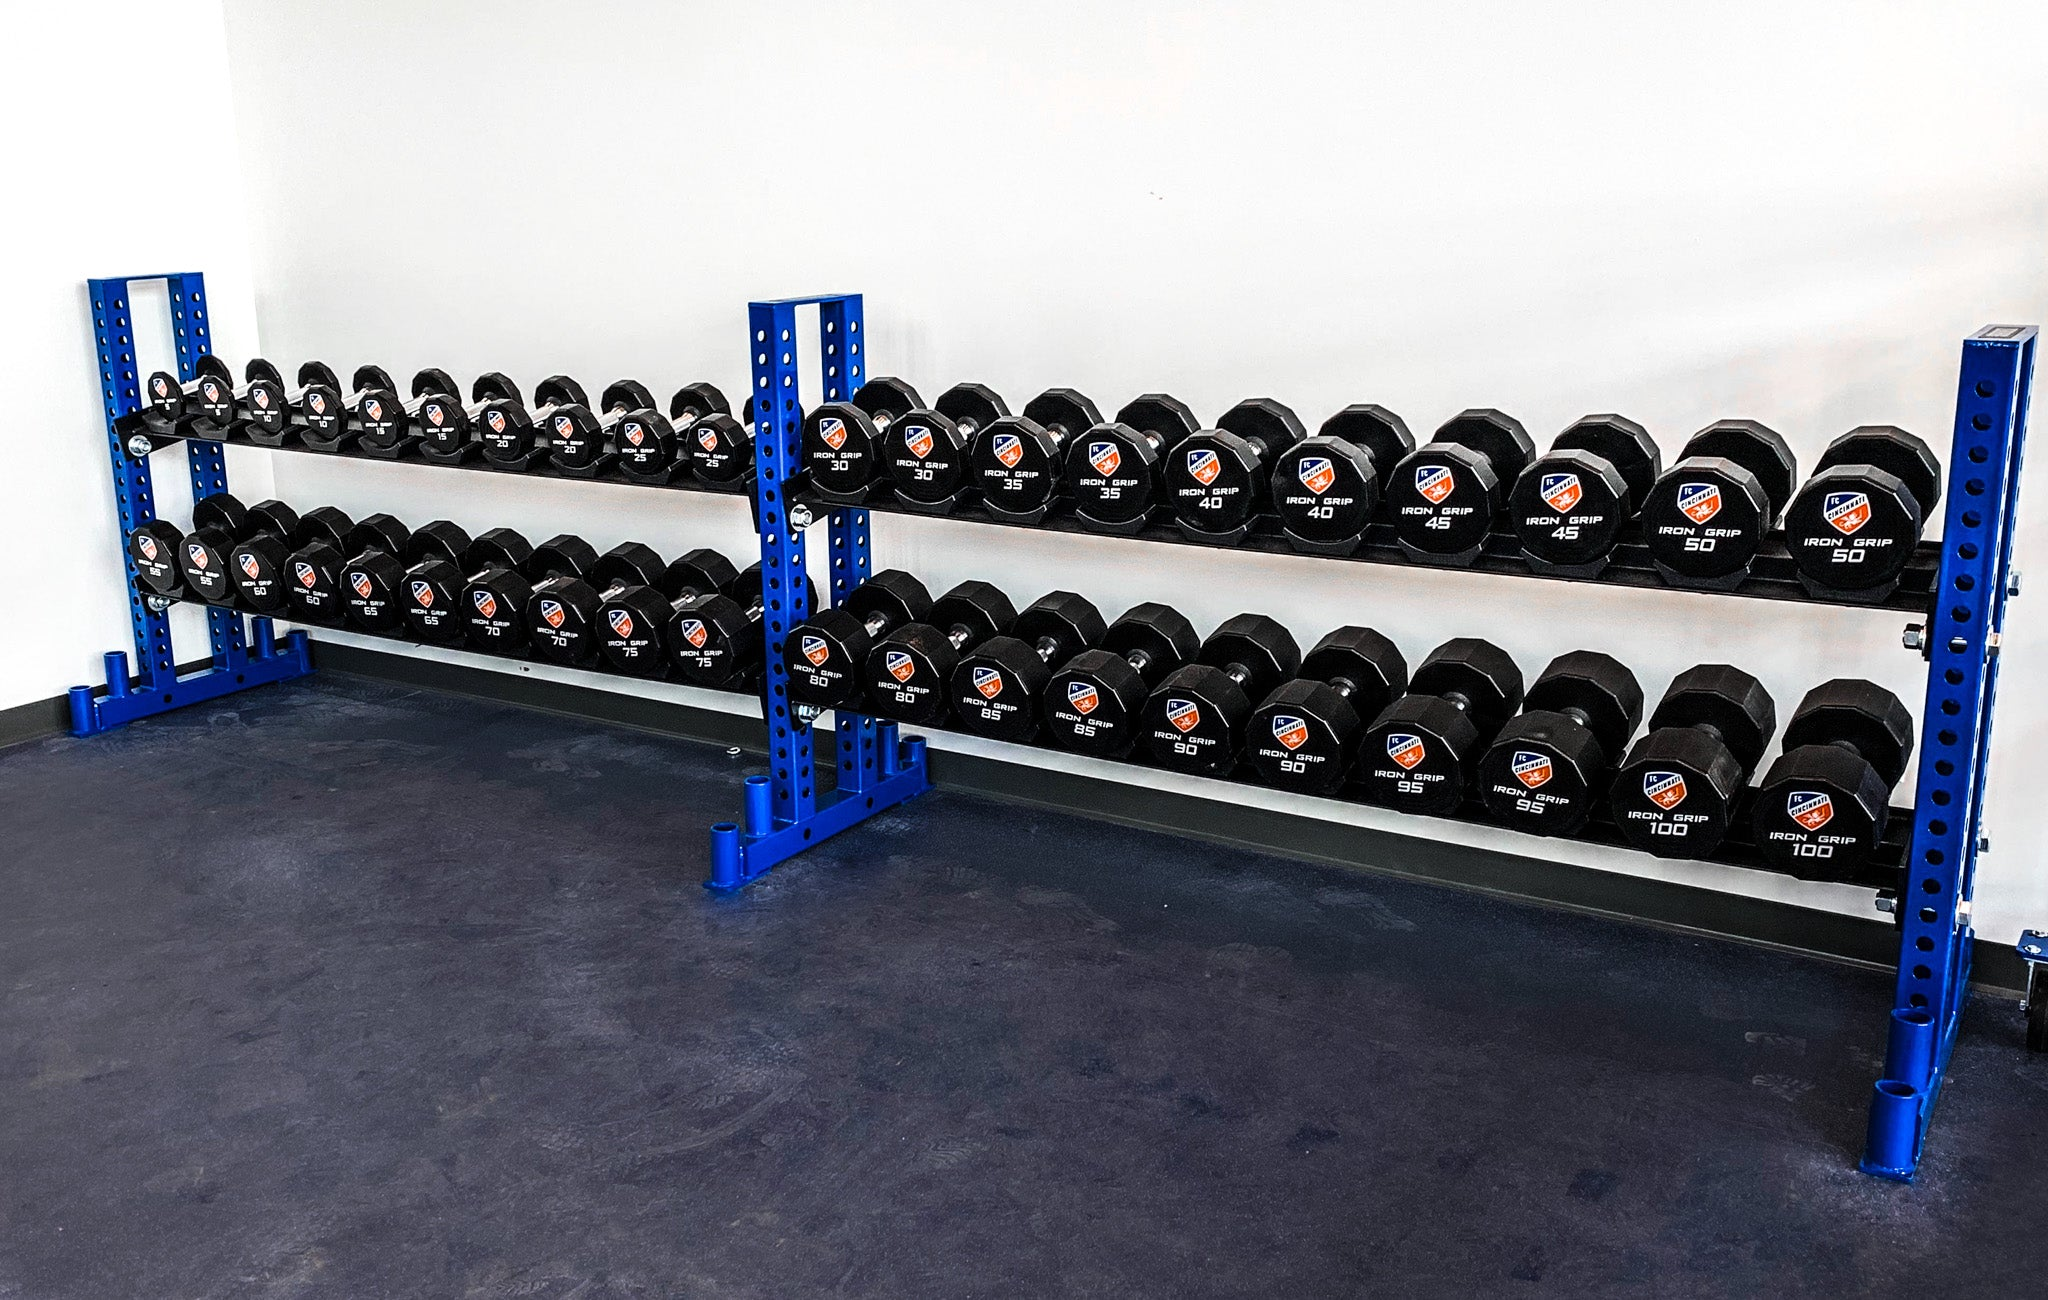 FC Cincinnati weight training